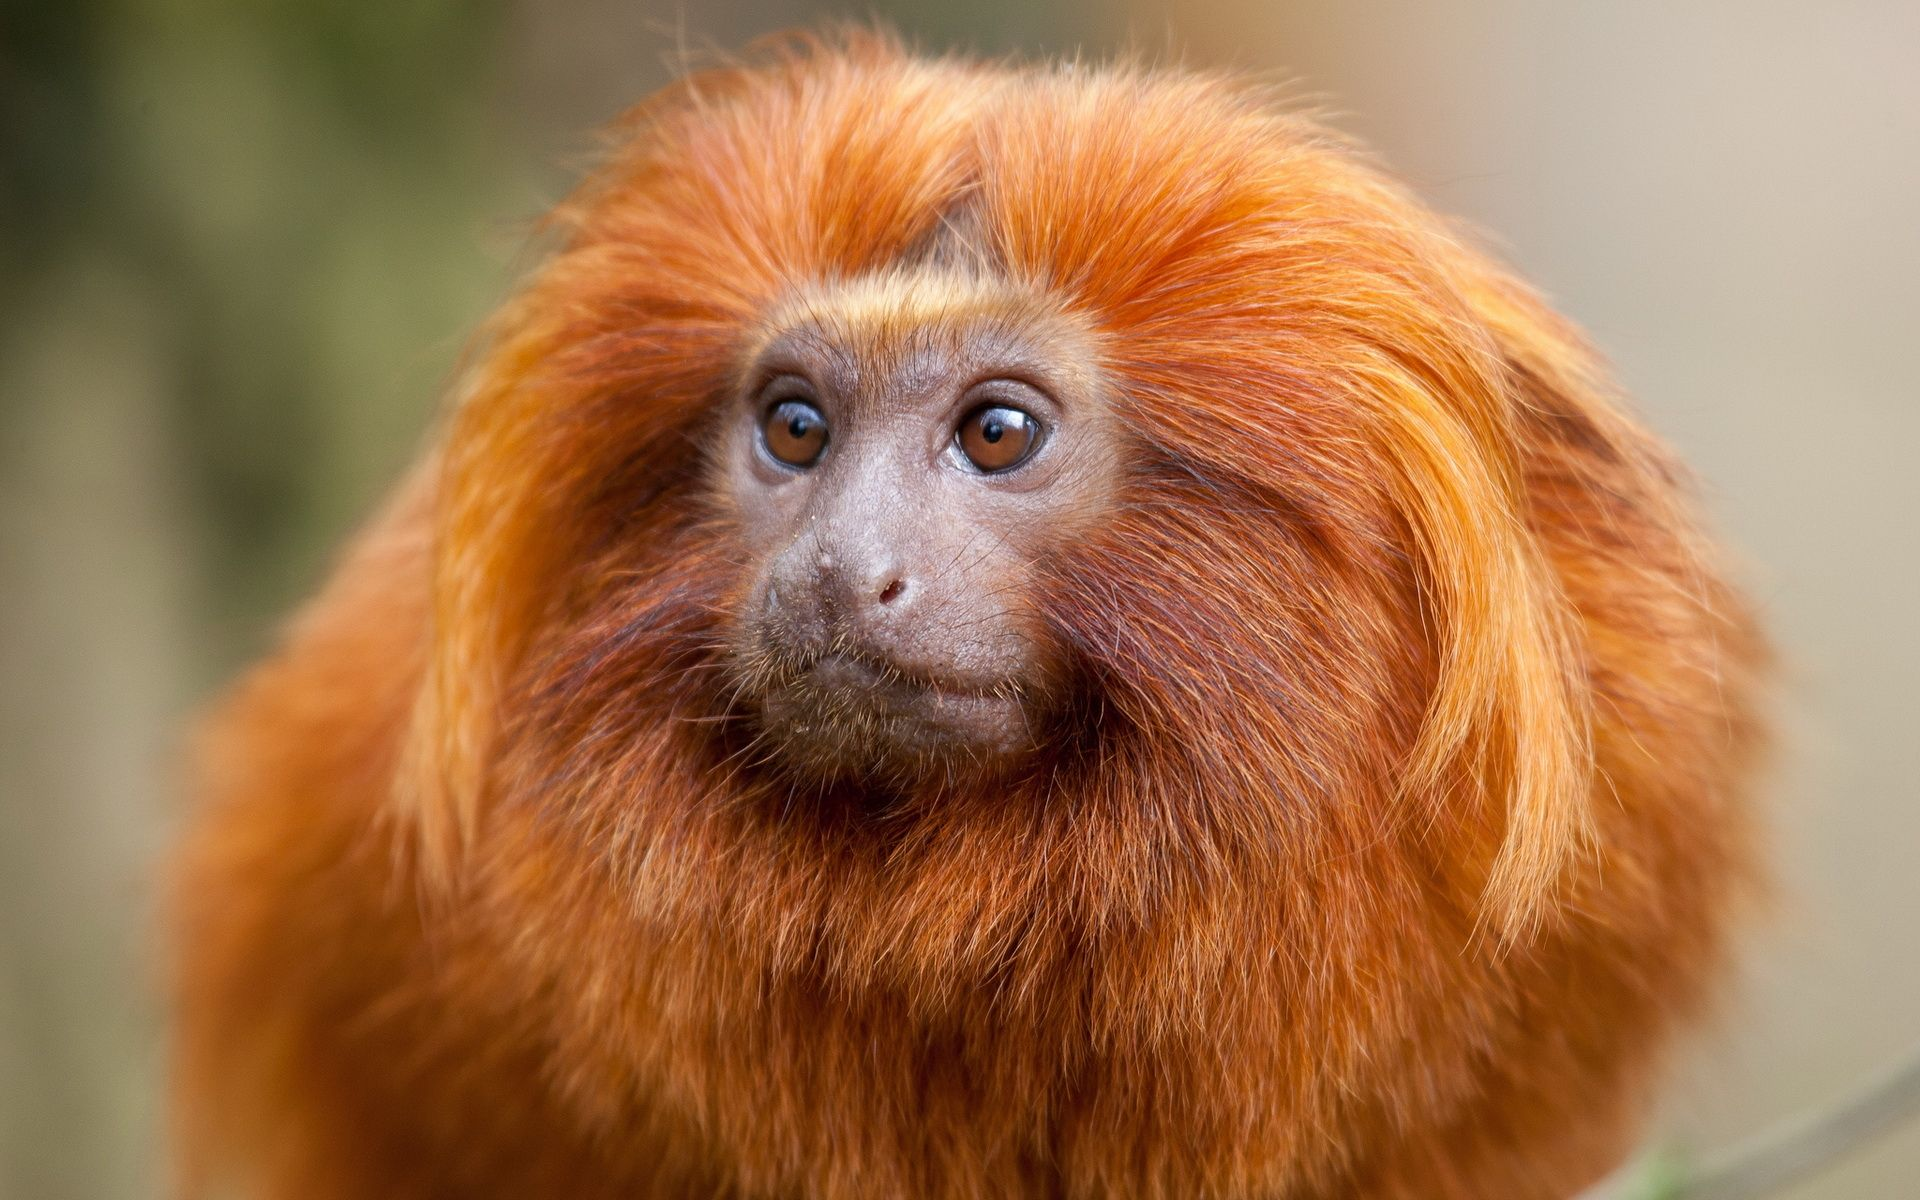 red monkey orange with long hair all animals pinterest monkey monkey wallpaper and large. Black Bedroom Furniture Sets. Home Design Ideas